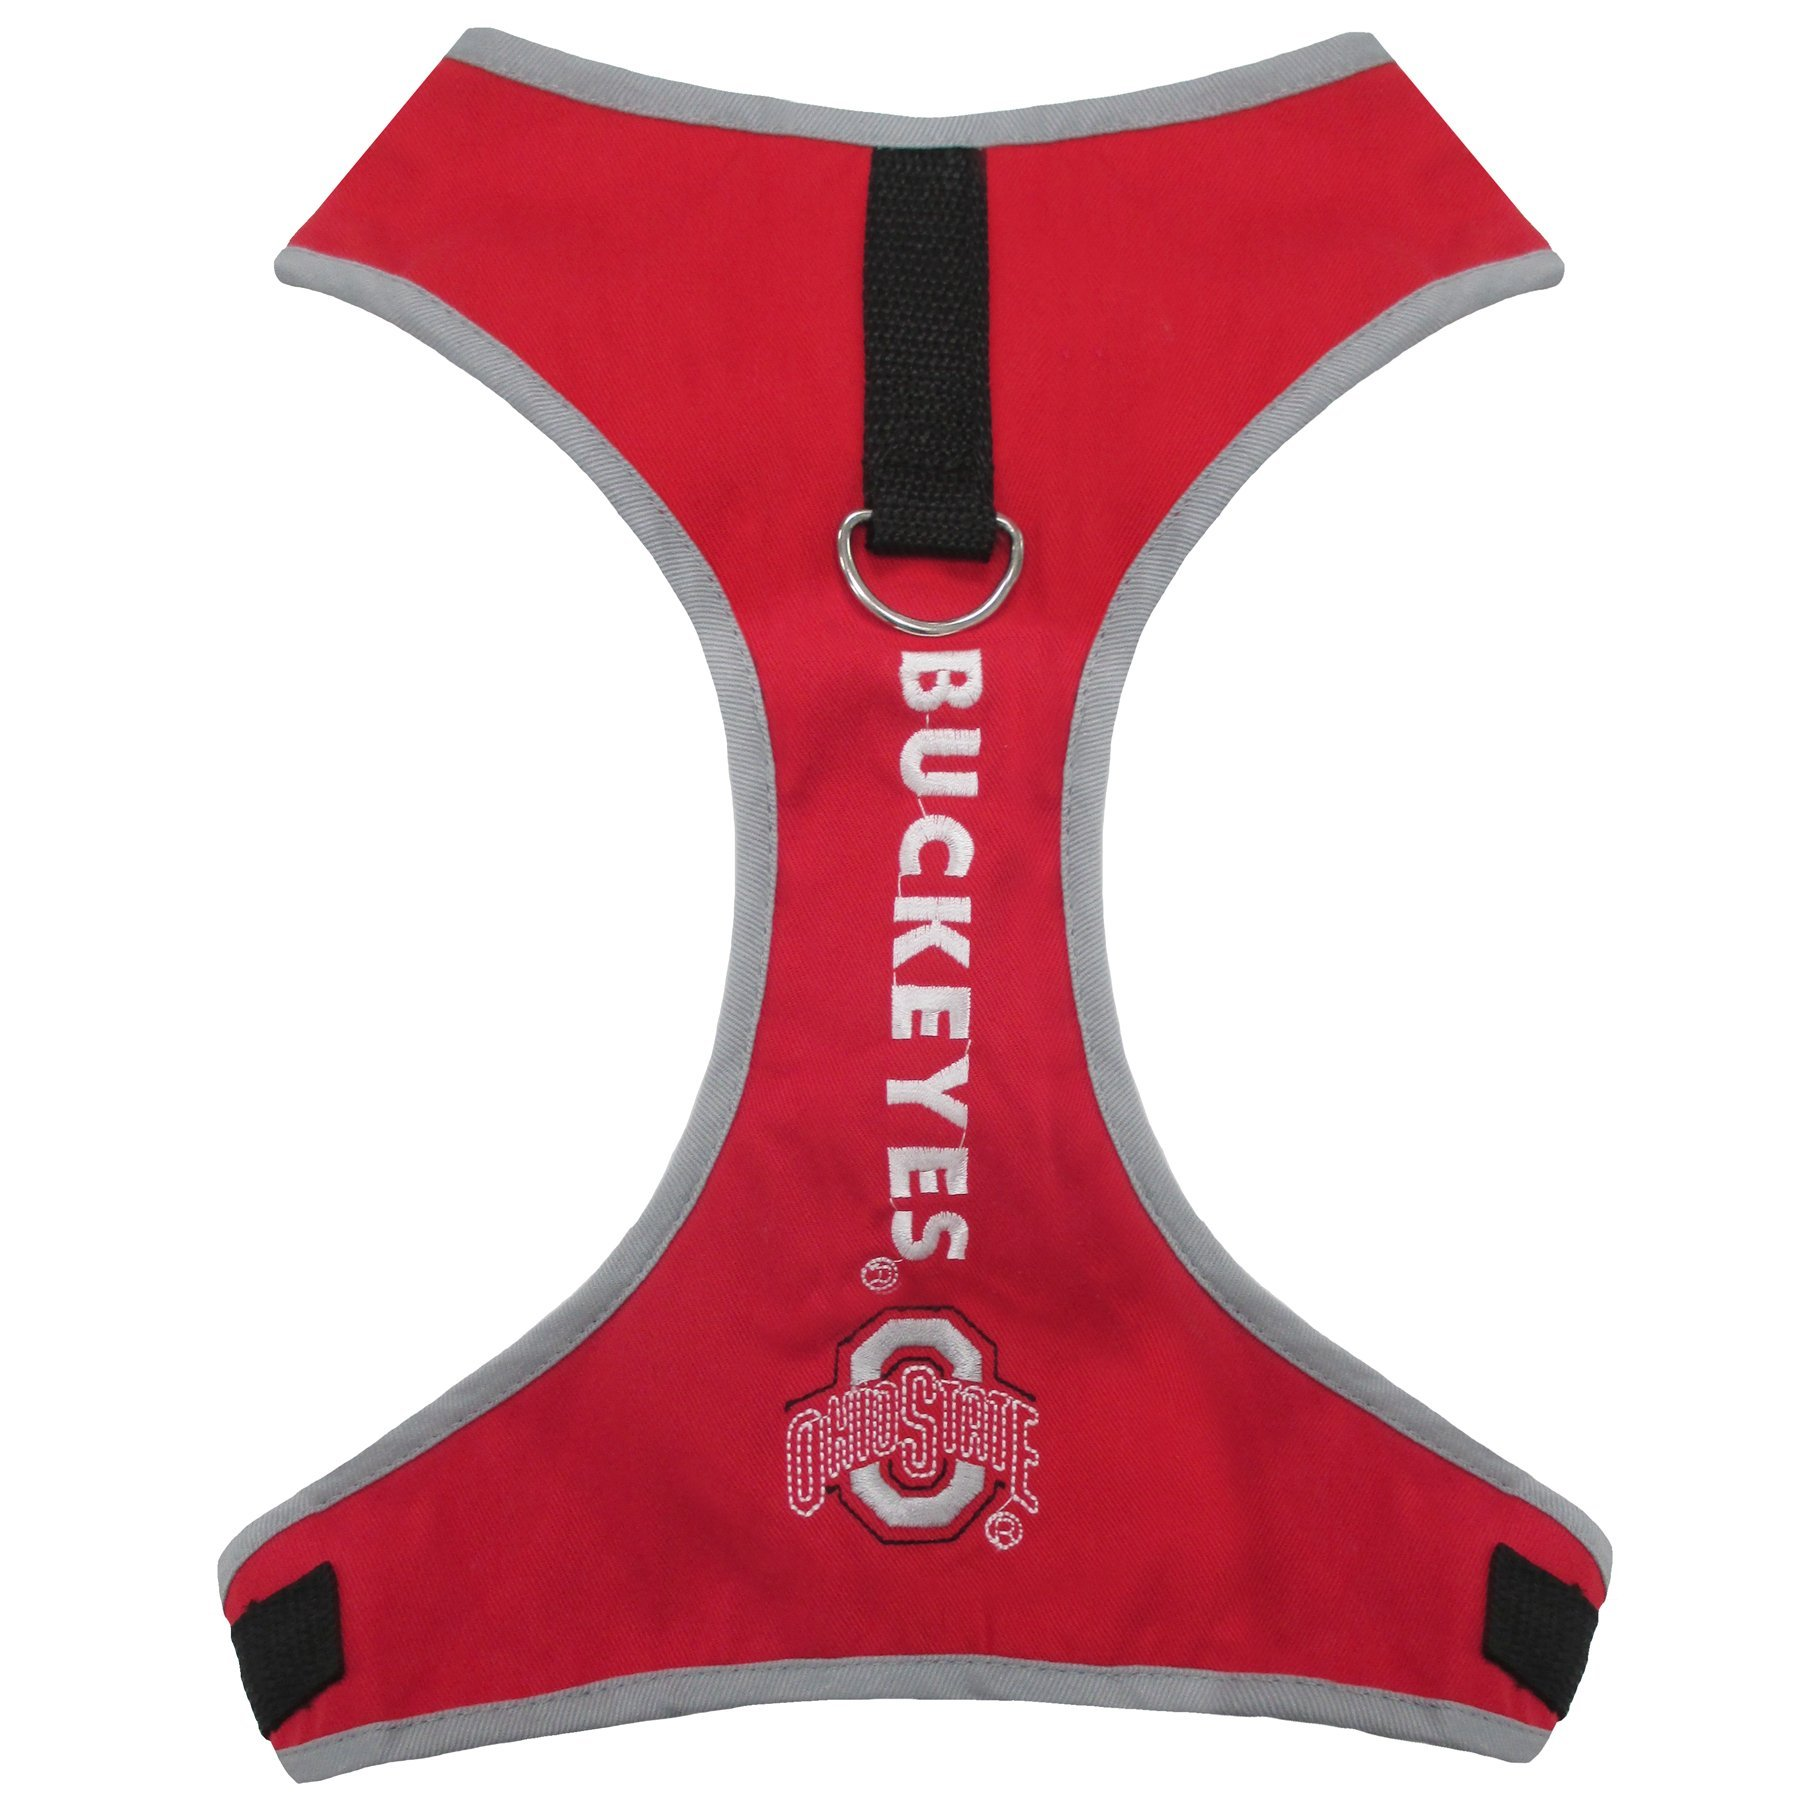 Pets First Collegiate Pet Accessories, Pet Harness, Ohio State Buckeyes, X-Small